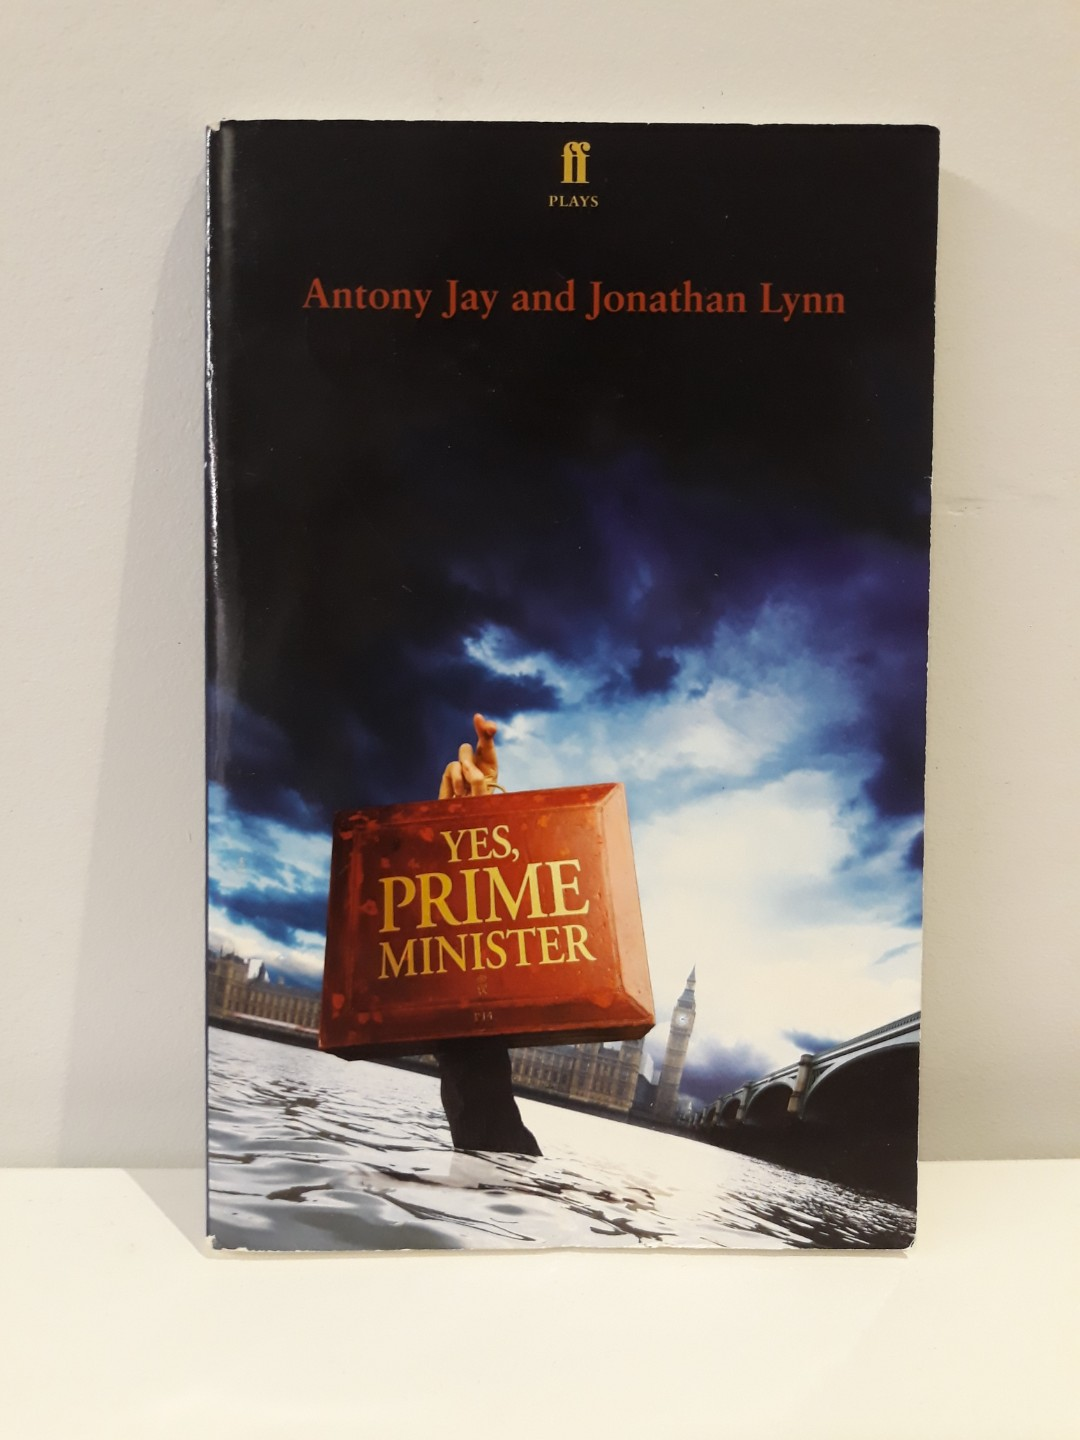 Yes, Prime Minister: A play by Antony Jay & Johnathan Lynn